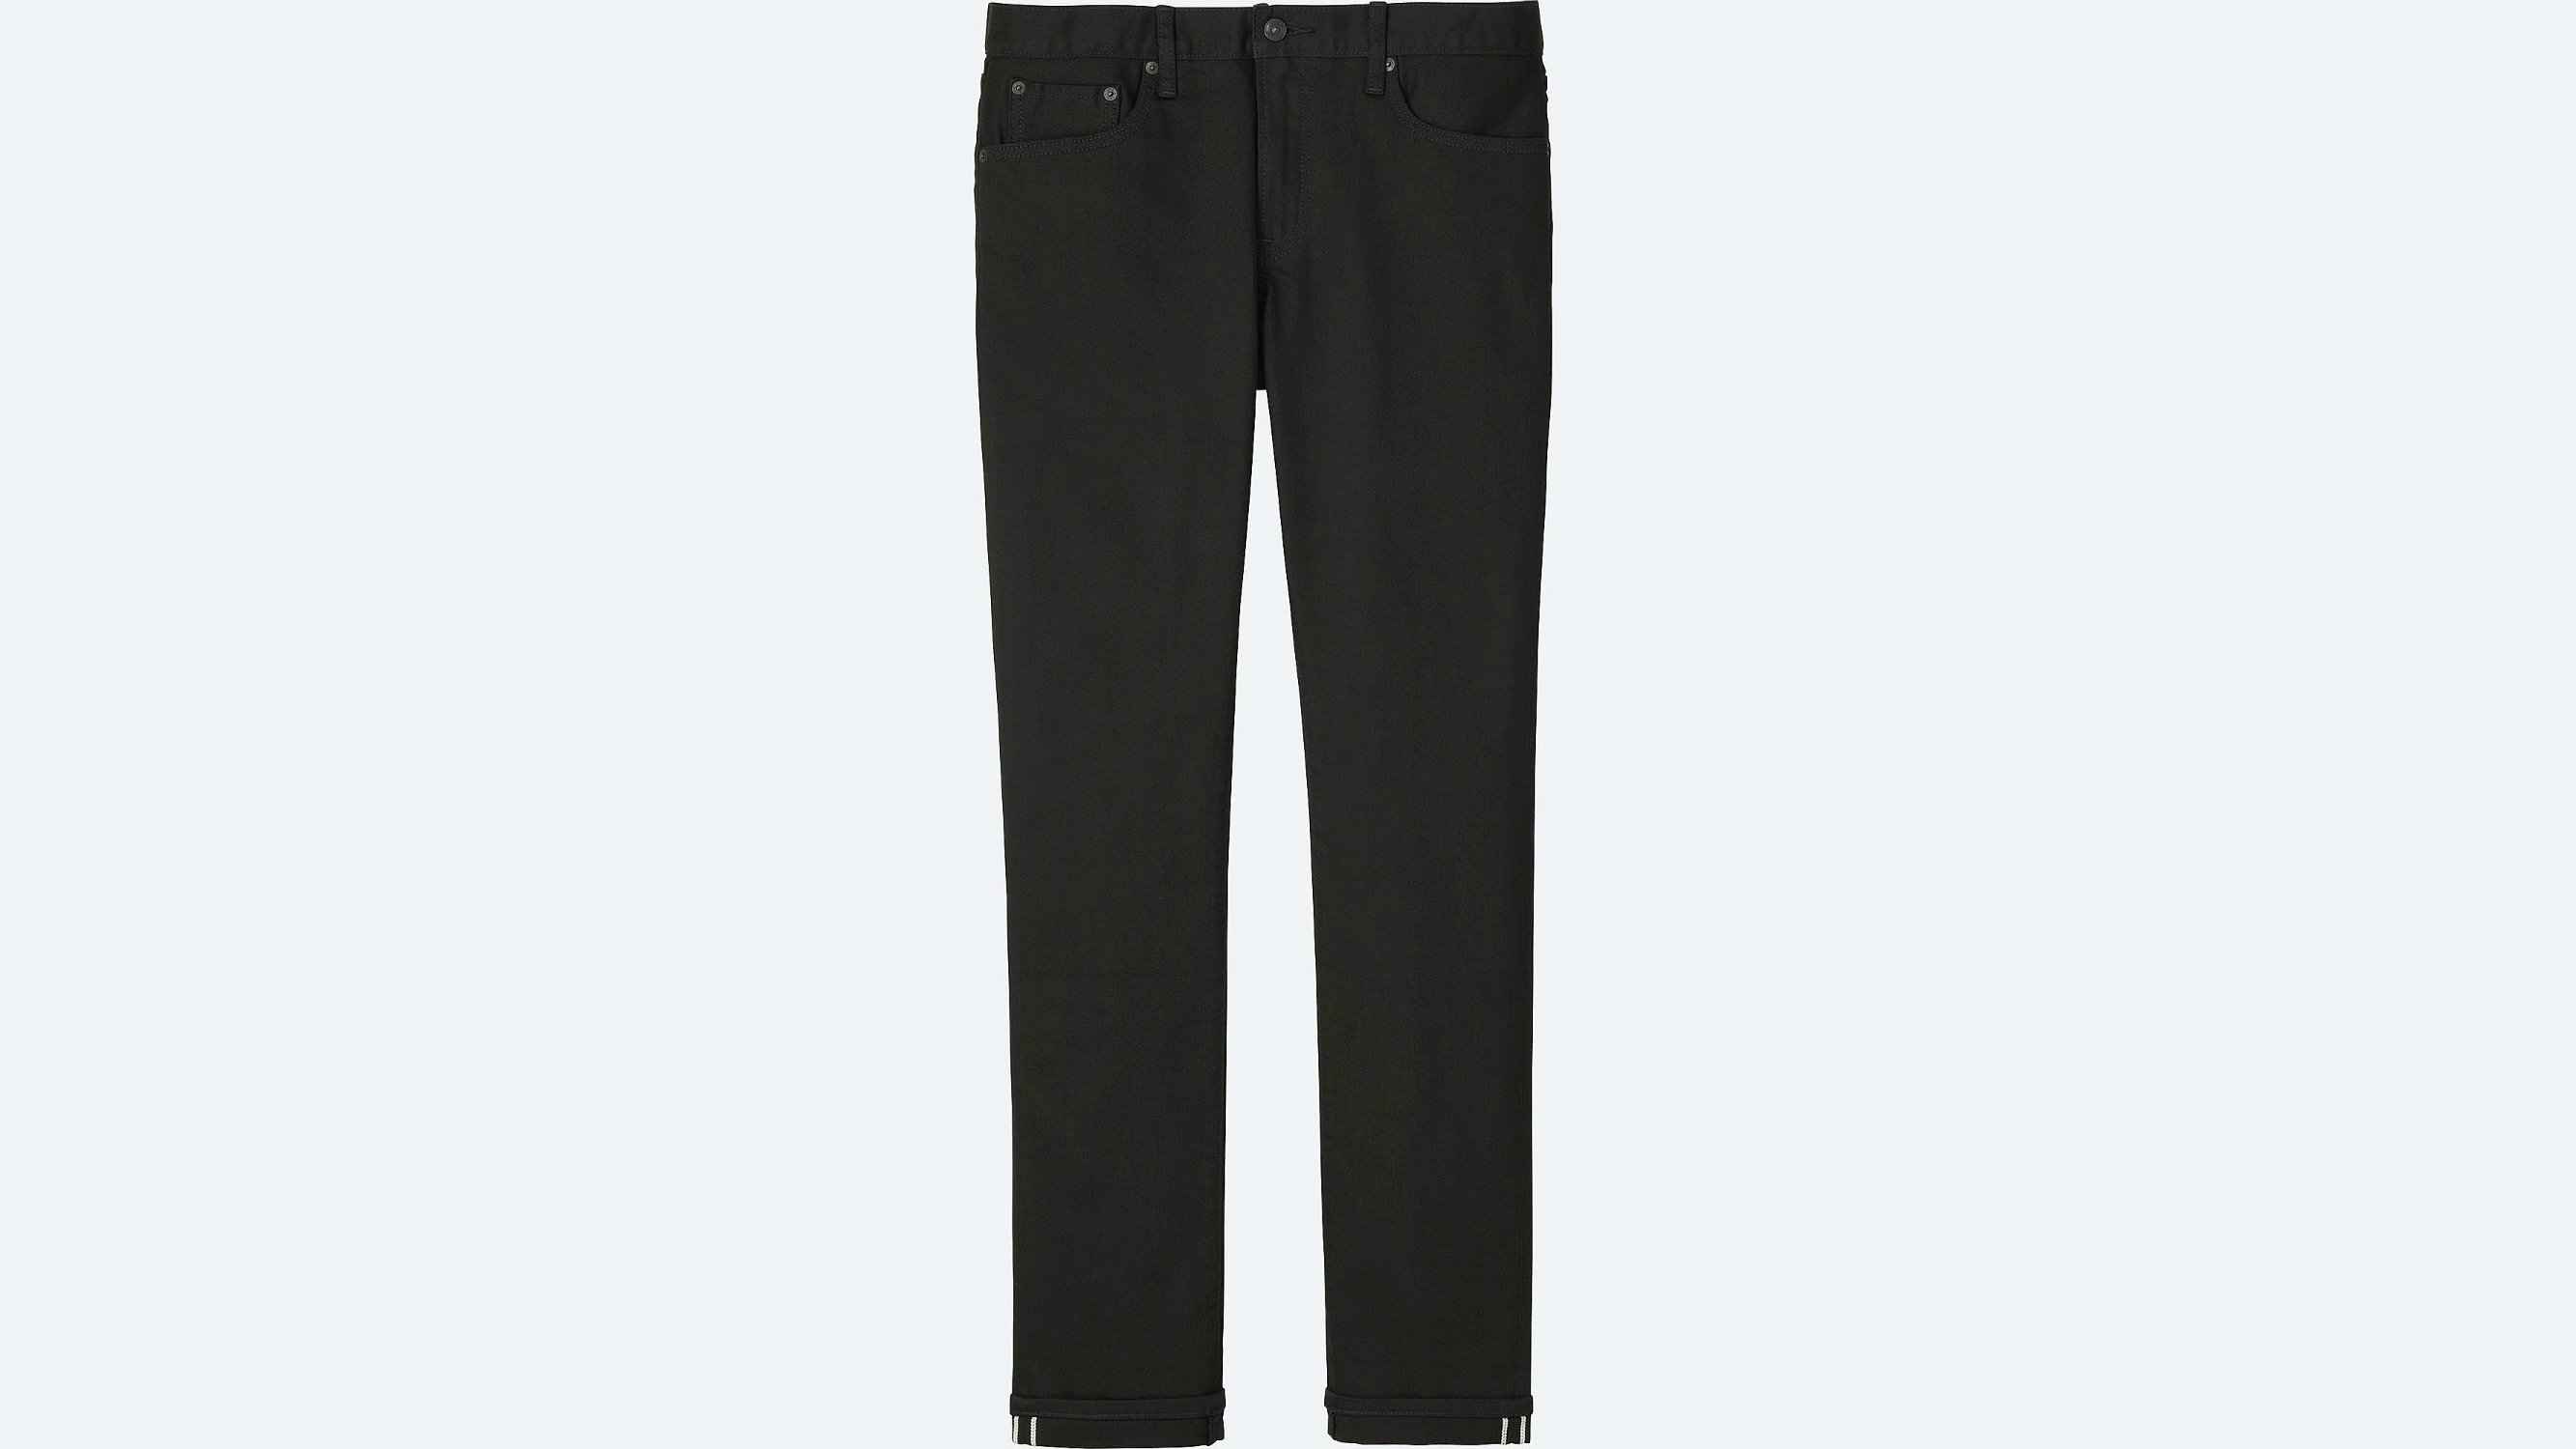 fbb26870 Uniqlo has a reputation for making clothes best suited for slim,  narrow-shouldered men - and if you fit that category, a pair of these black slim  jeans will ...